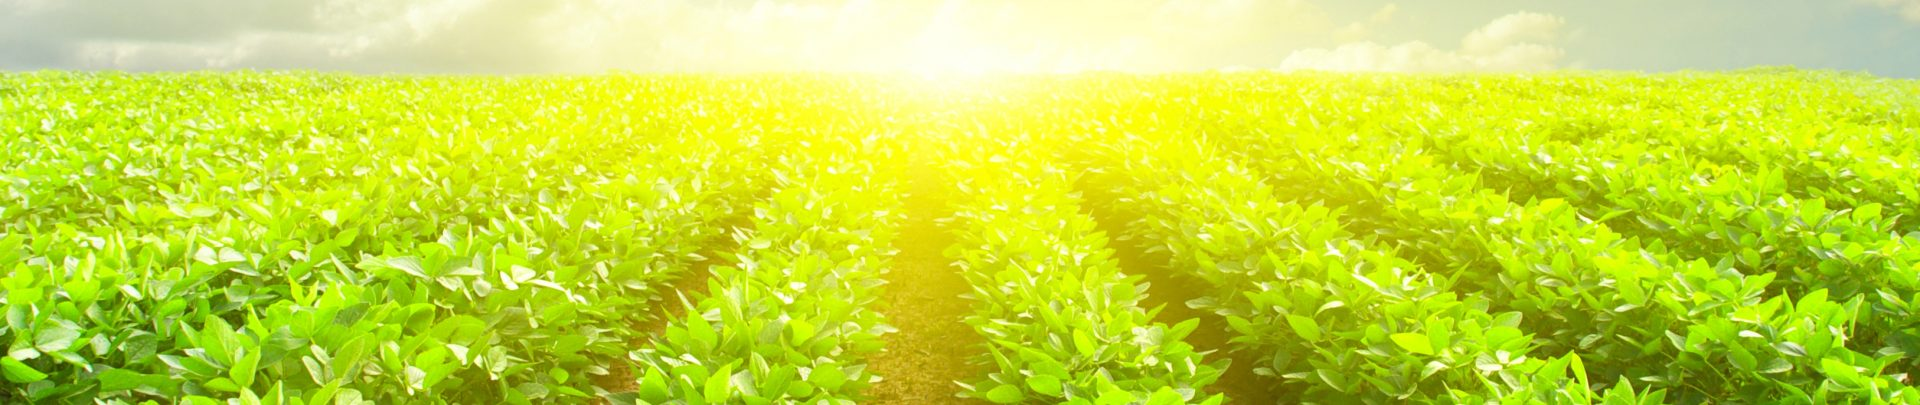 Trading, Sourcing & Marketing of Agricultural Commodities